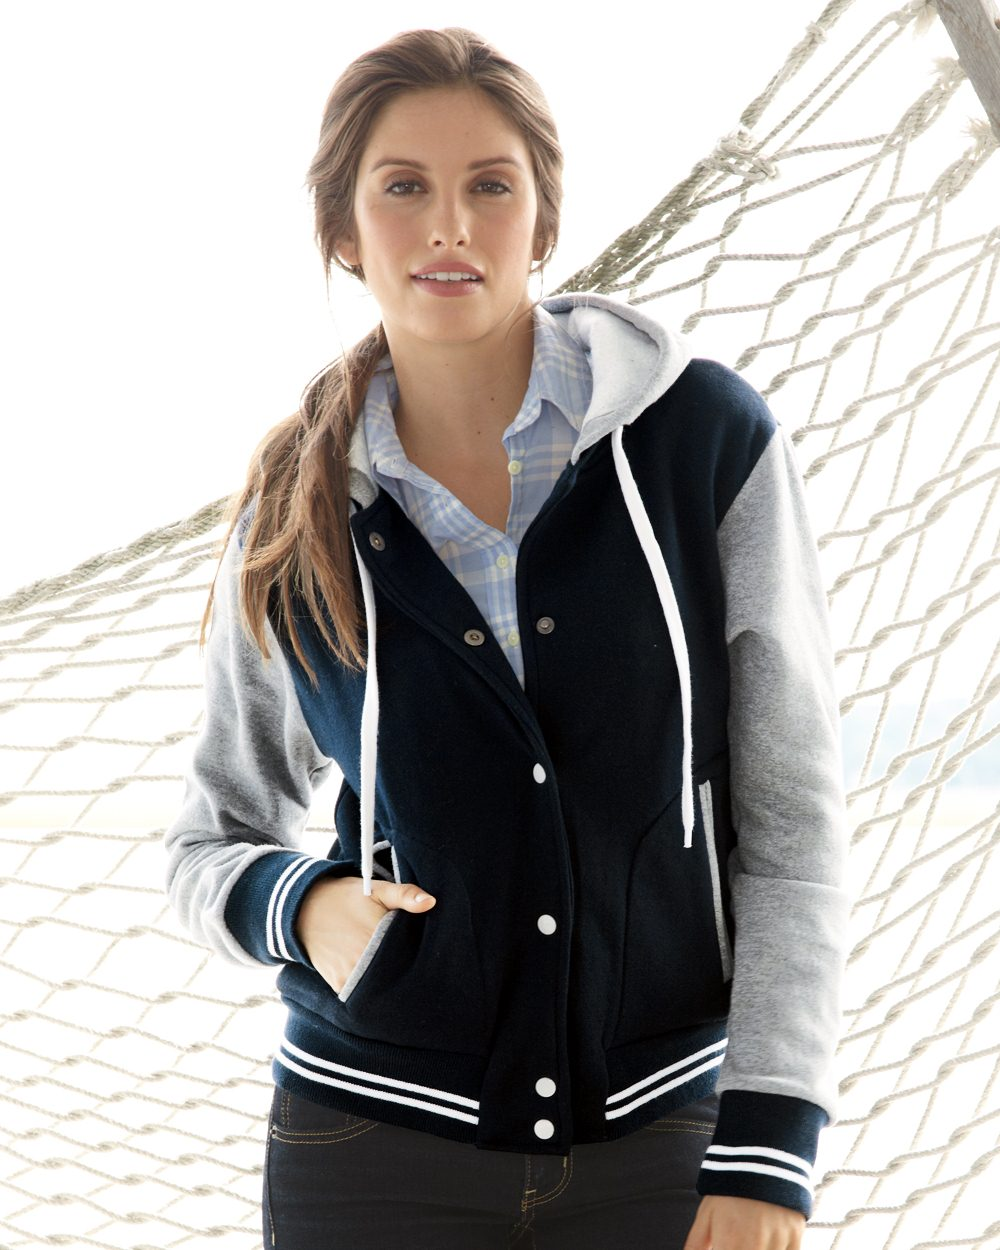 MV Sport Ladies' Varsity Sweatshirt - W2344